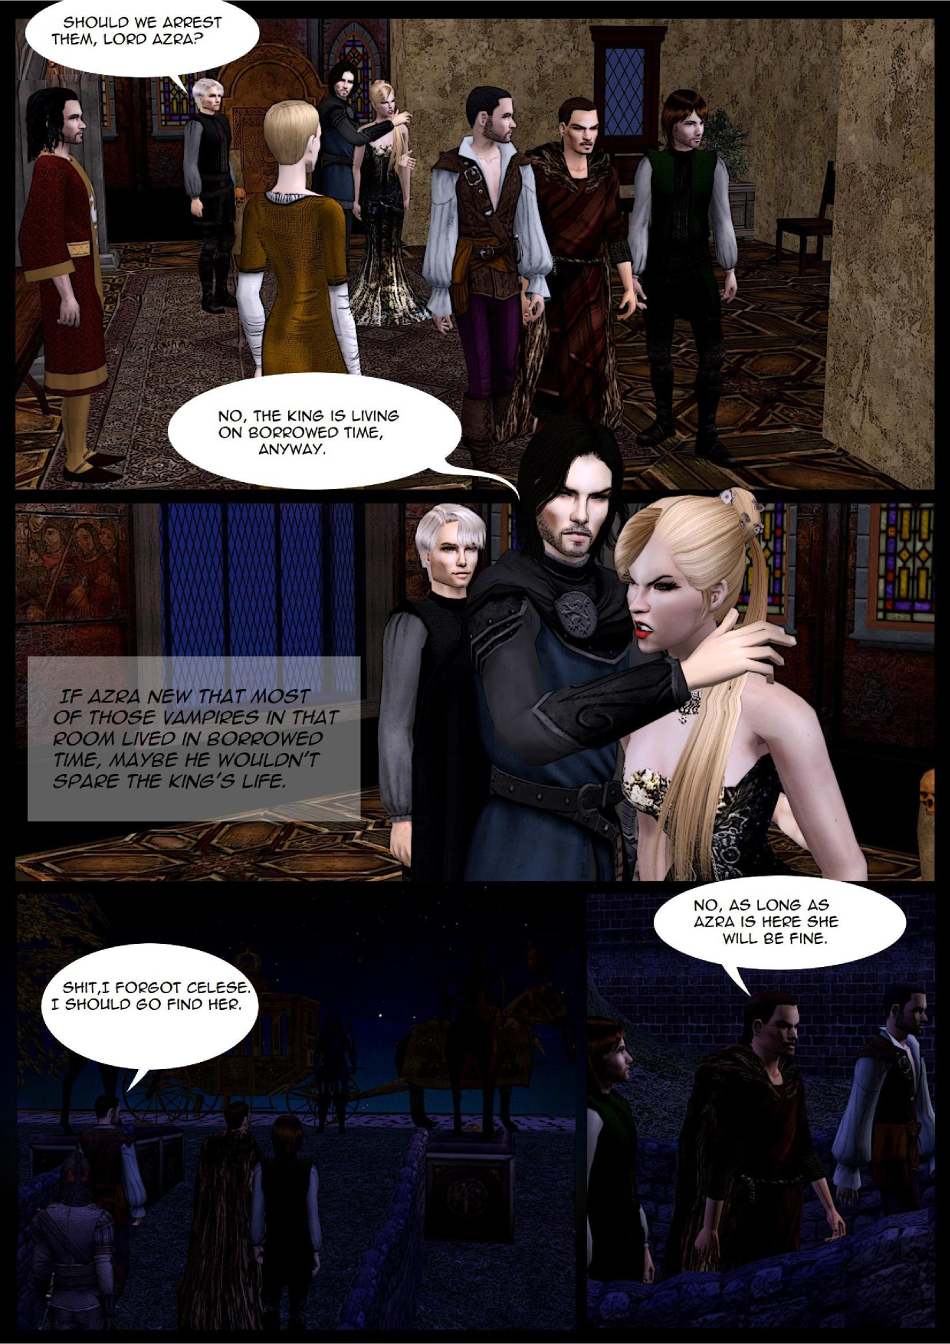 The throne room p.25